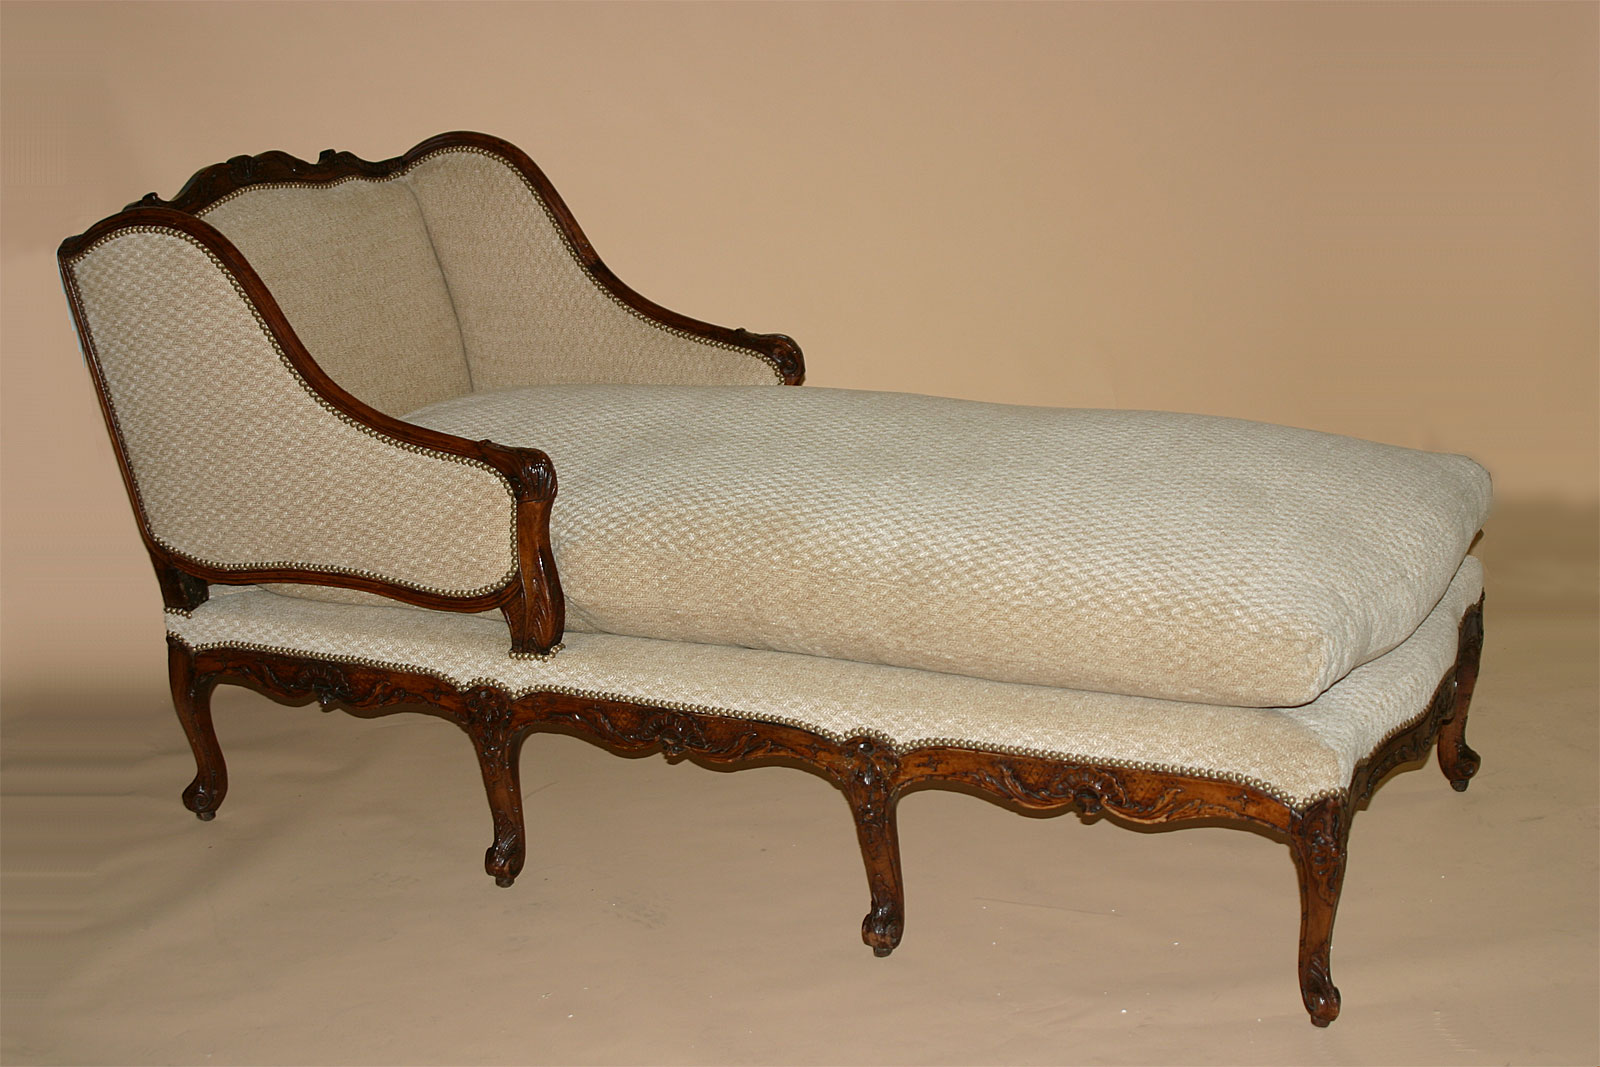 French louis xv period chaise longue for sale antiques for Chaise for sale